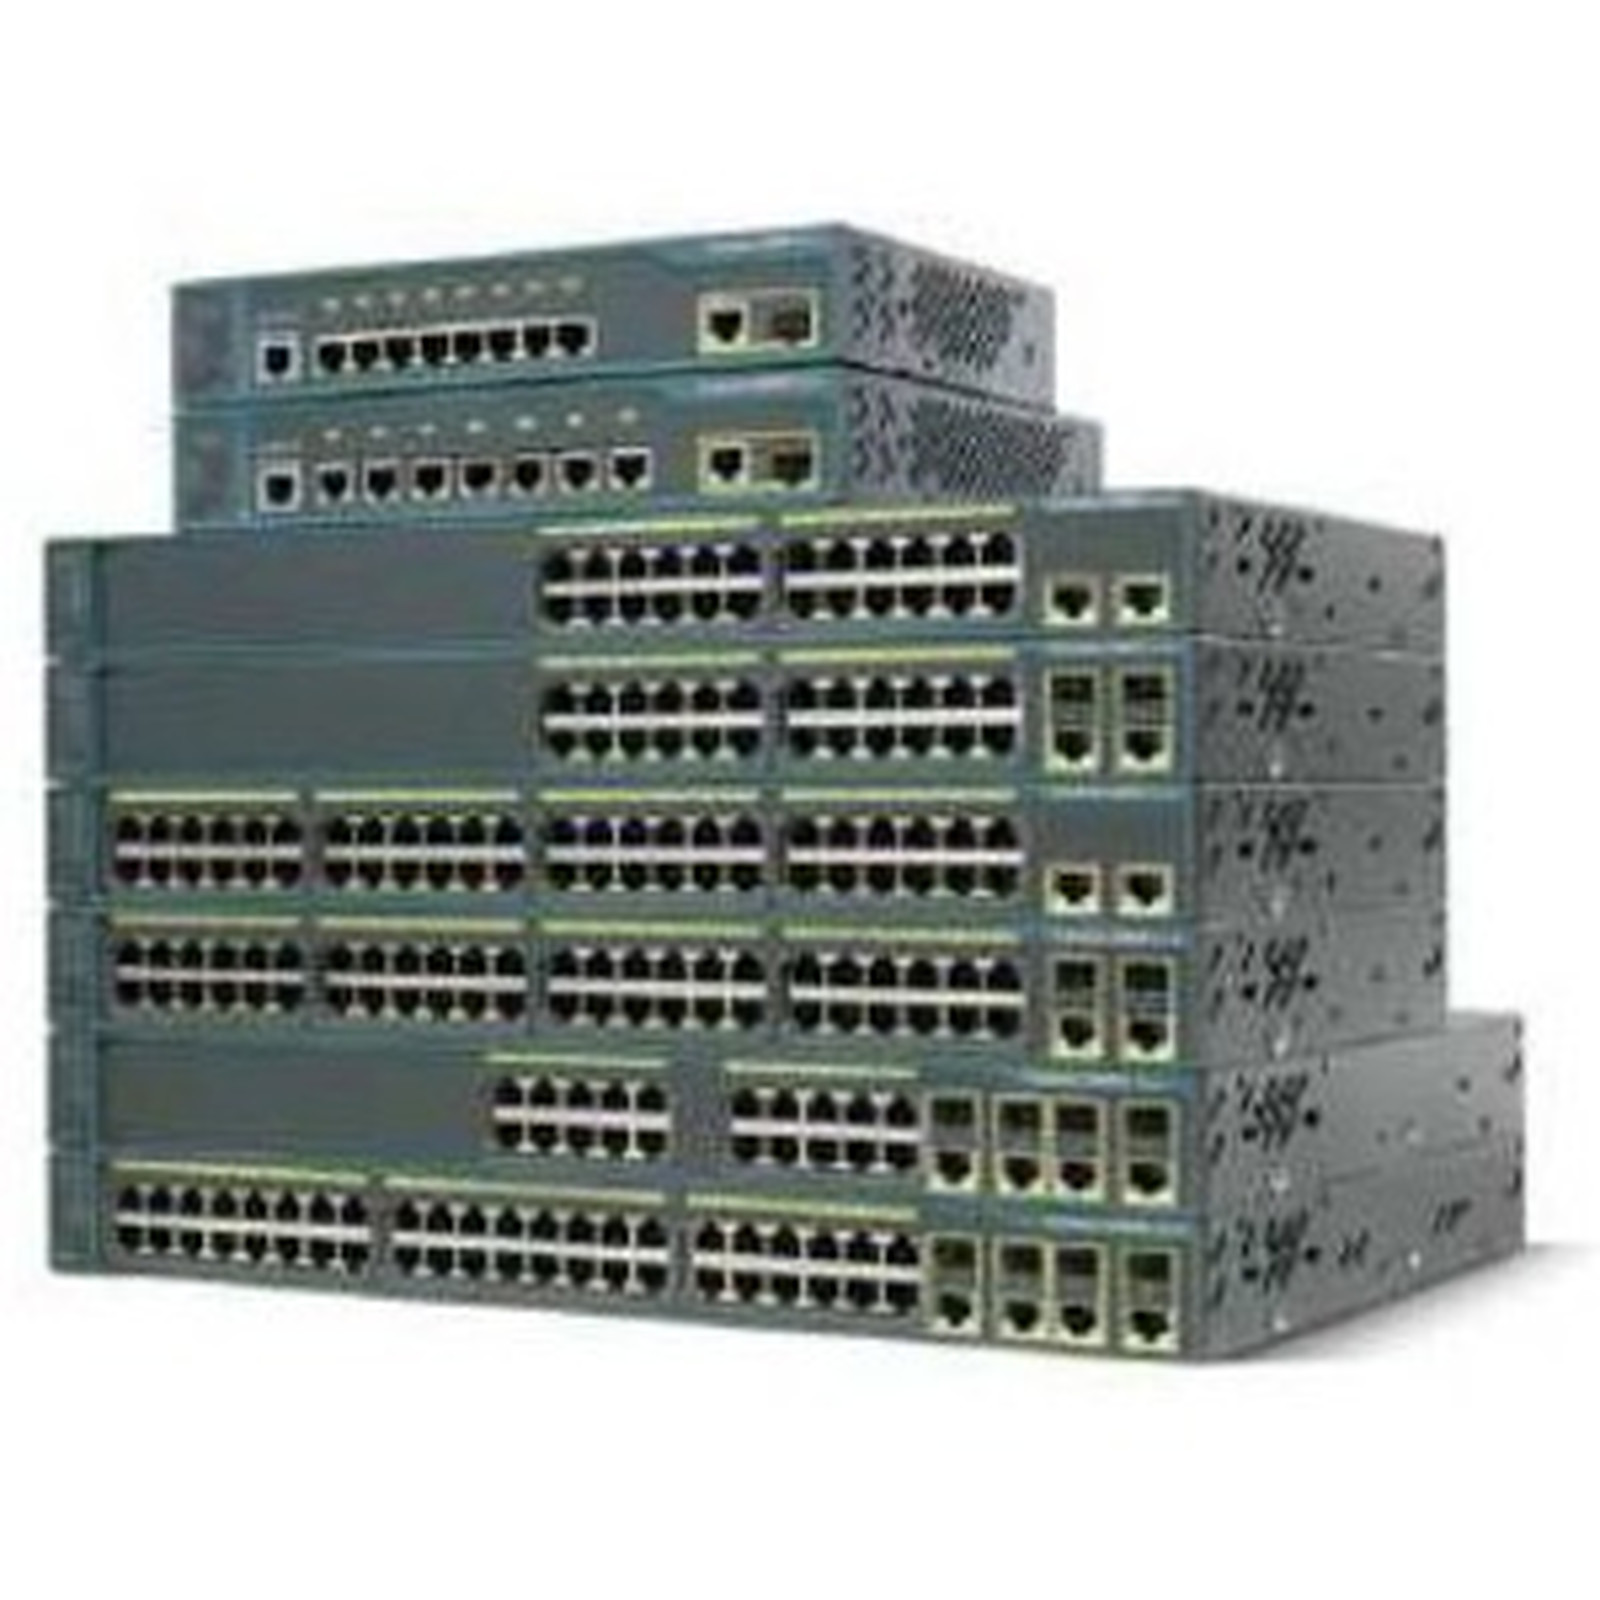 Cisco Catalyst 2960 PLUS 48 10/100 POE+ 2 1000 BT + 2 SFP LAN Lite - WS-C2960+48PST-S